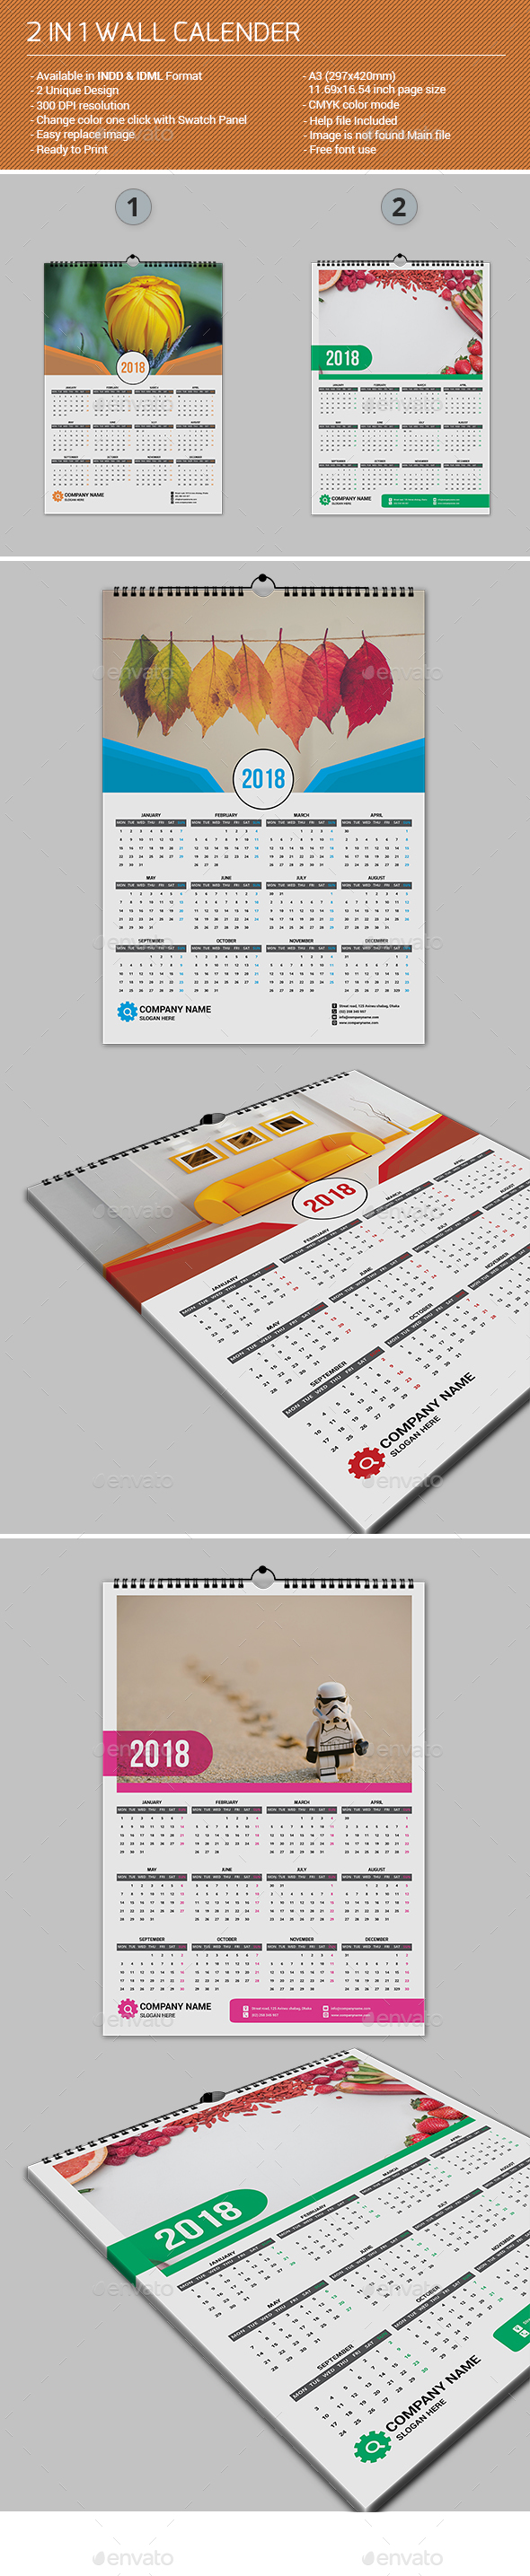 GraphicRiver 2 in 1 Wall Calender 21193865